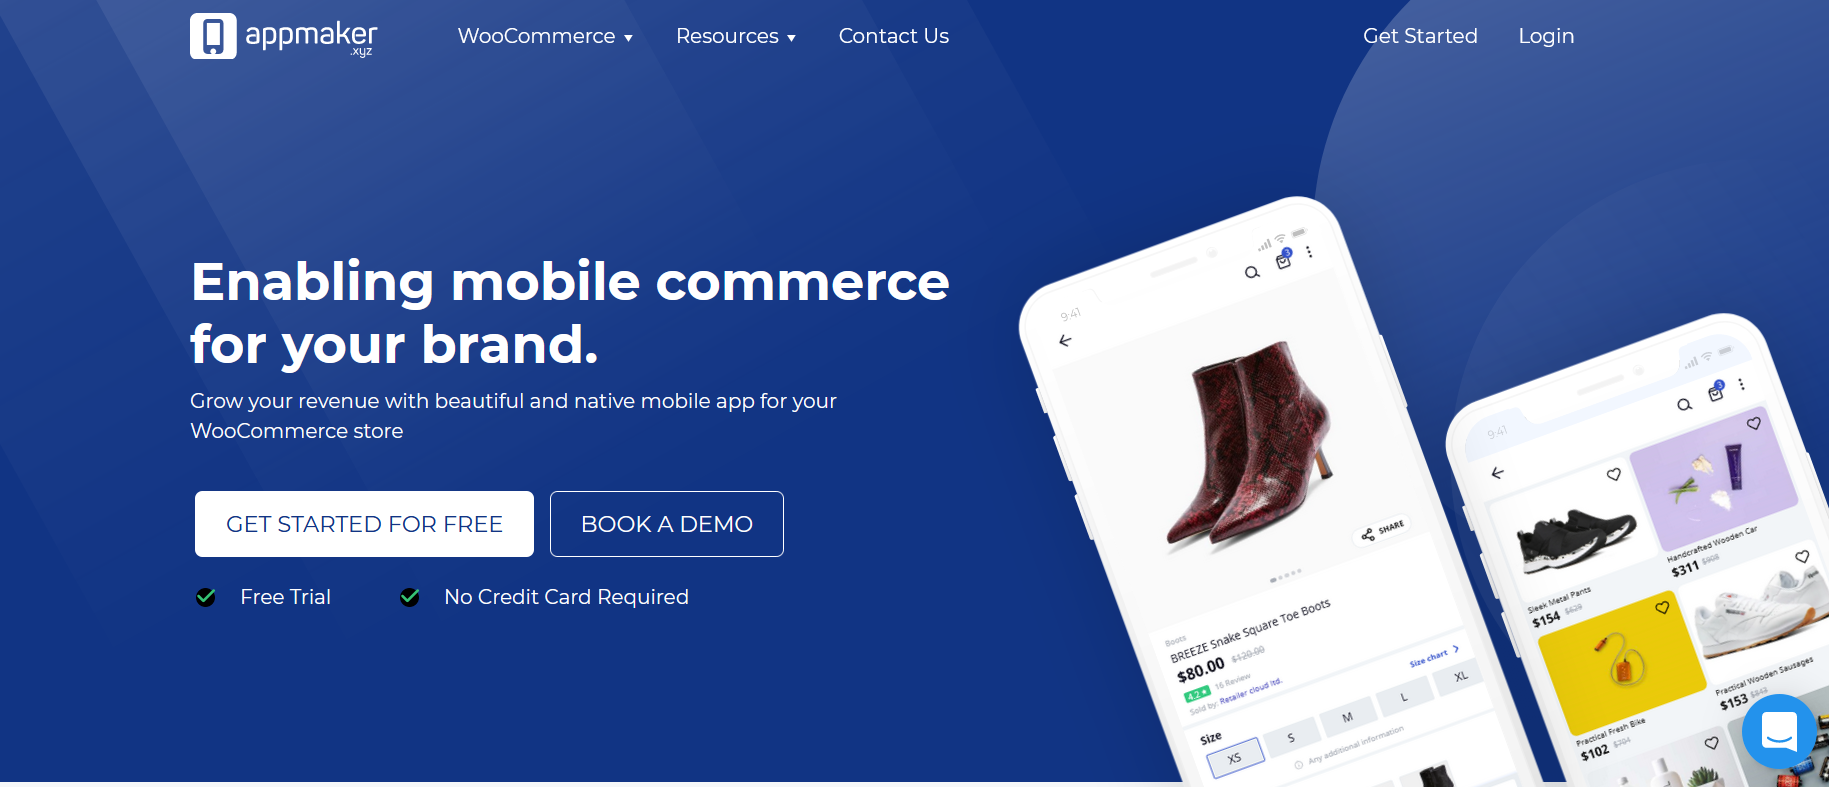 Best WooCommerce App Builders - appmaker